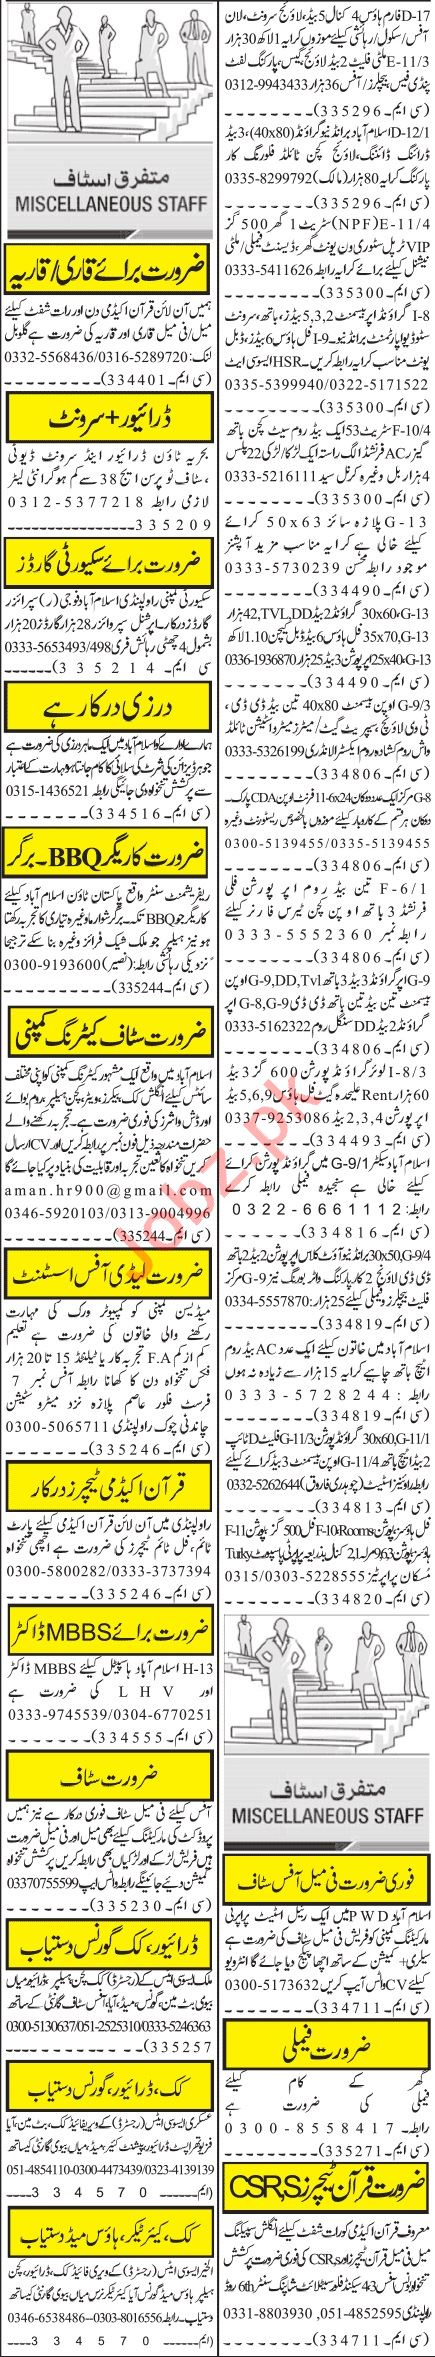 Jang Sunday Classified Ads 13 June 2021 for Management Staff